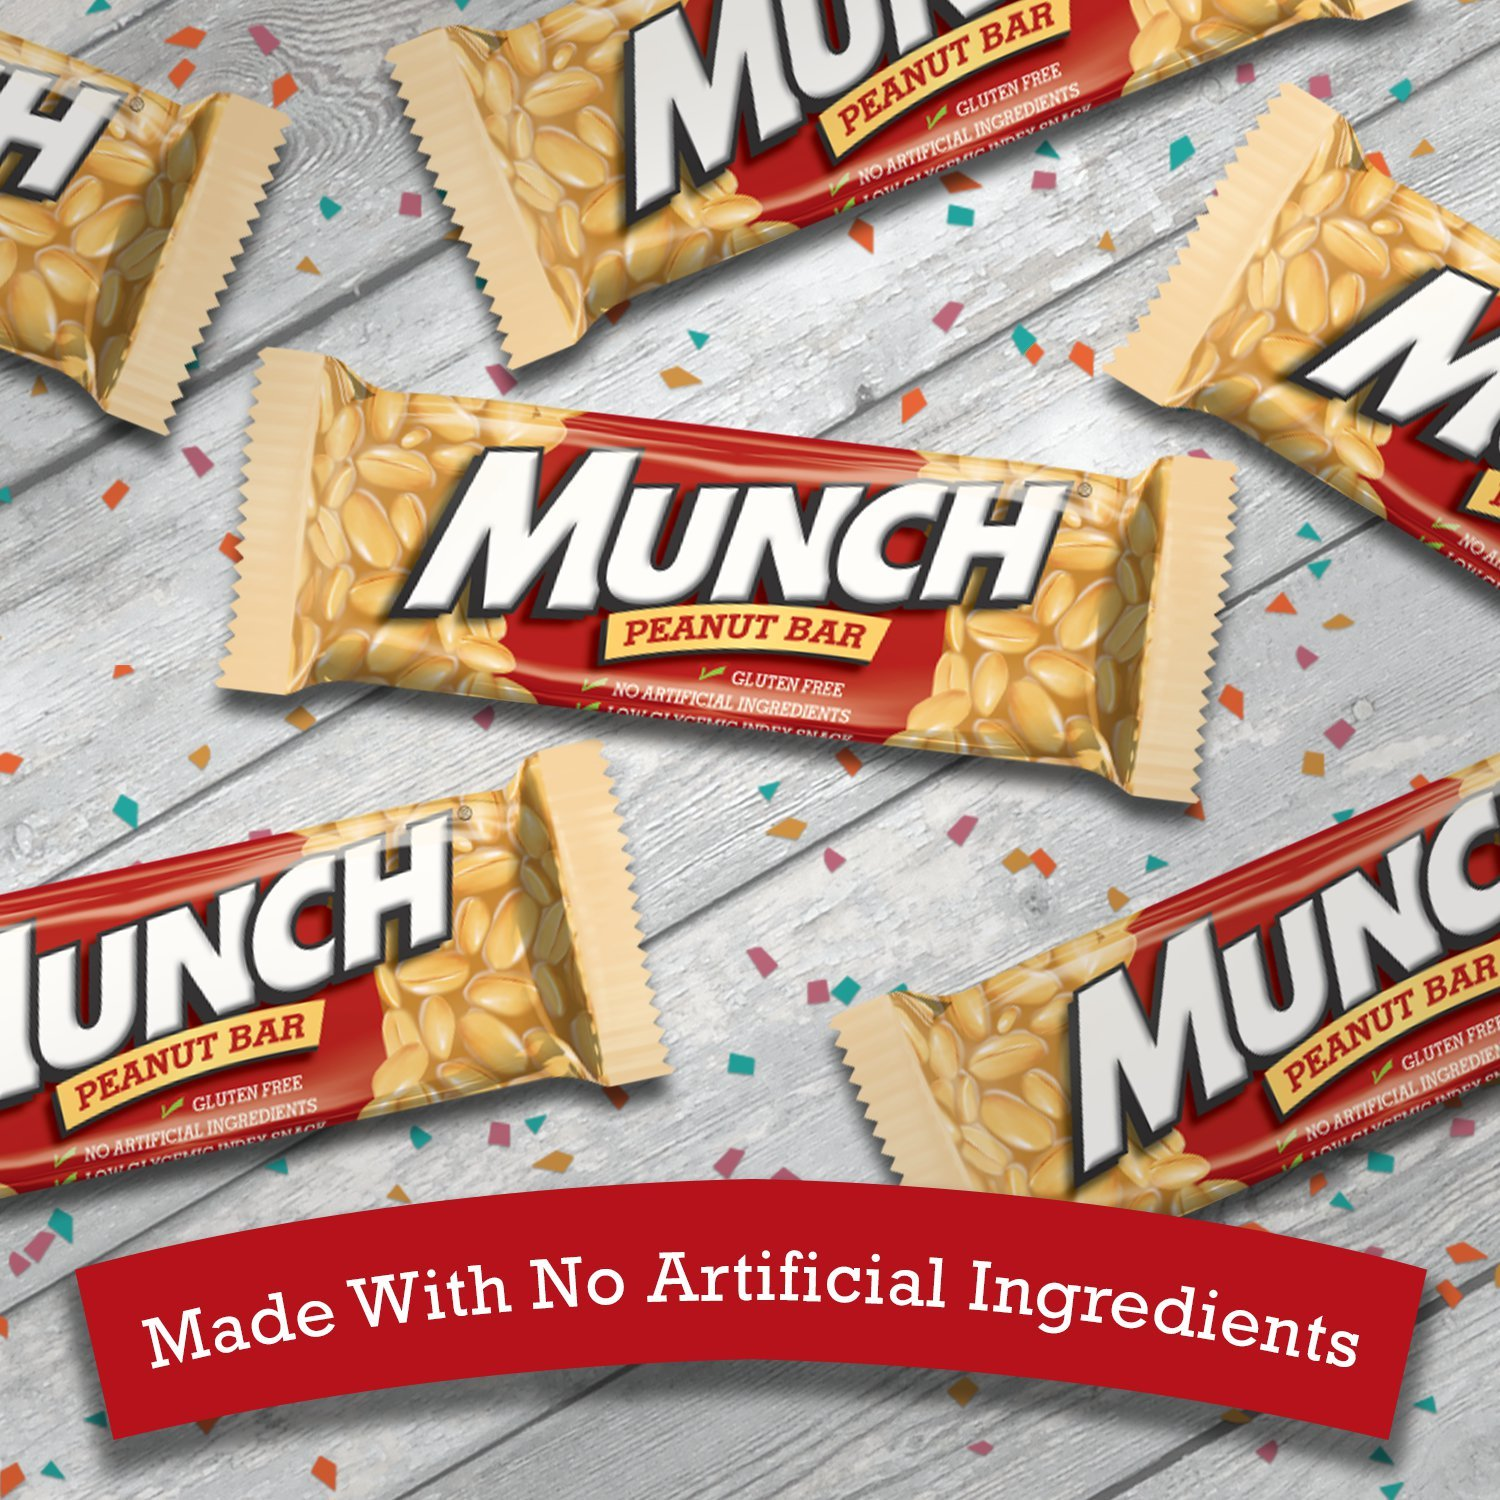 MUNCH Peanut Bar Singles Size 1.42-Ounce Bar 36-Count Box by Munch (Image #6)